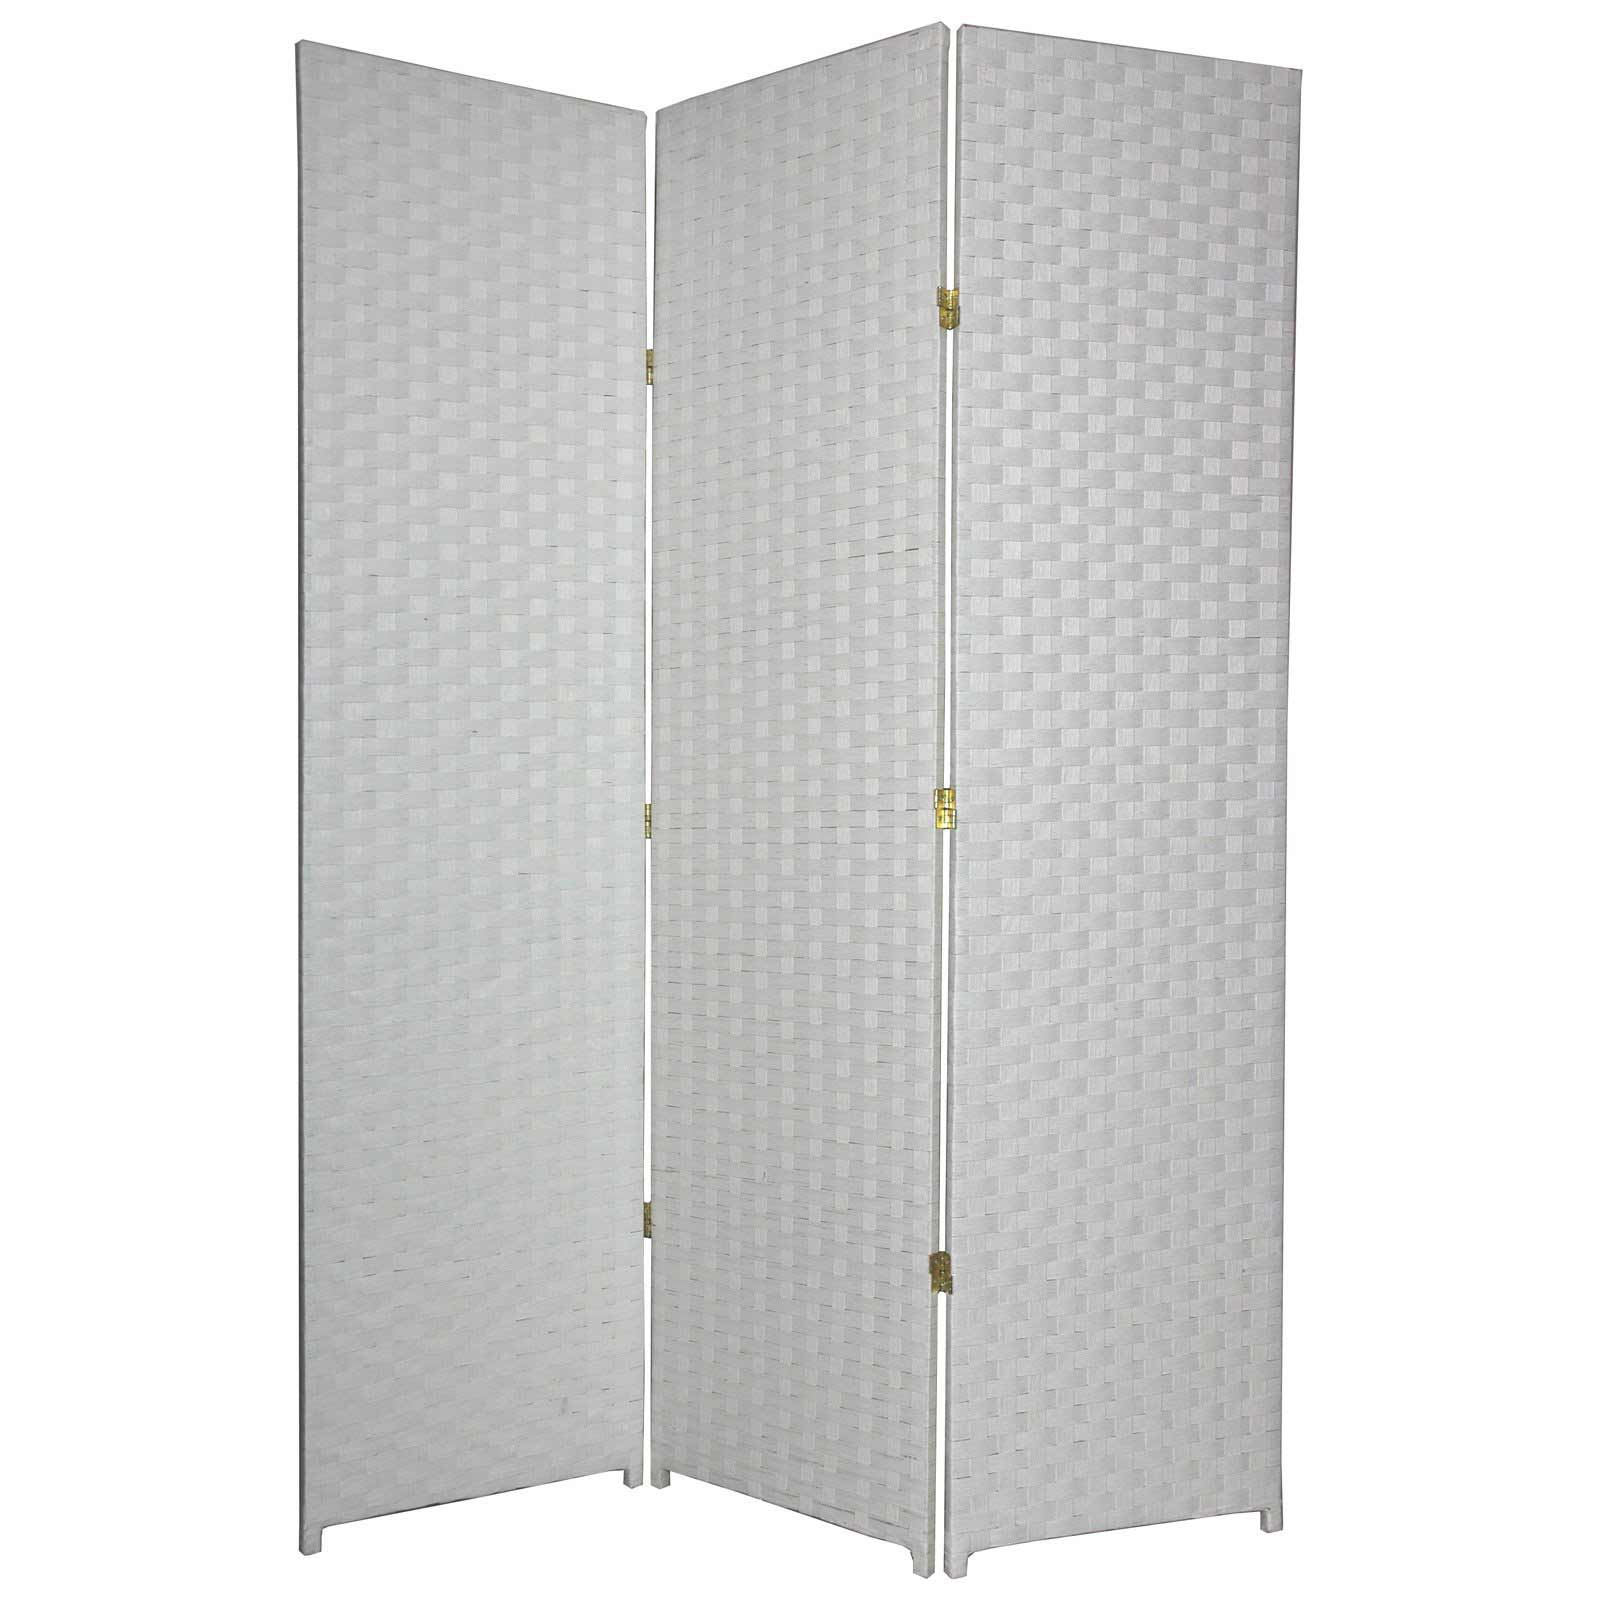 3 panels elegant fiber white room divider from Woven